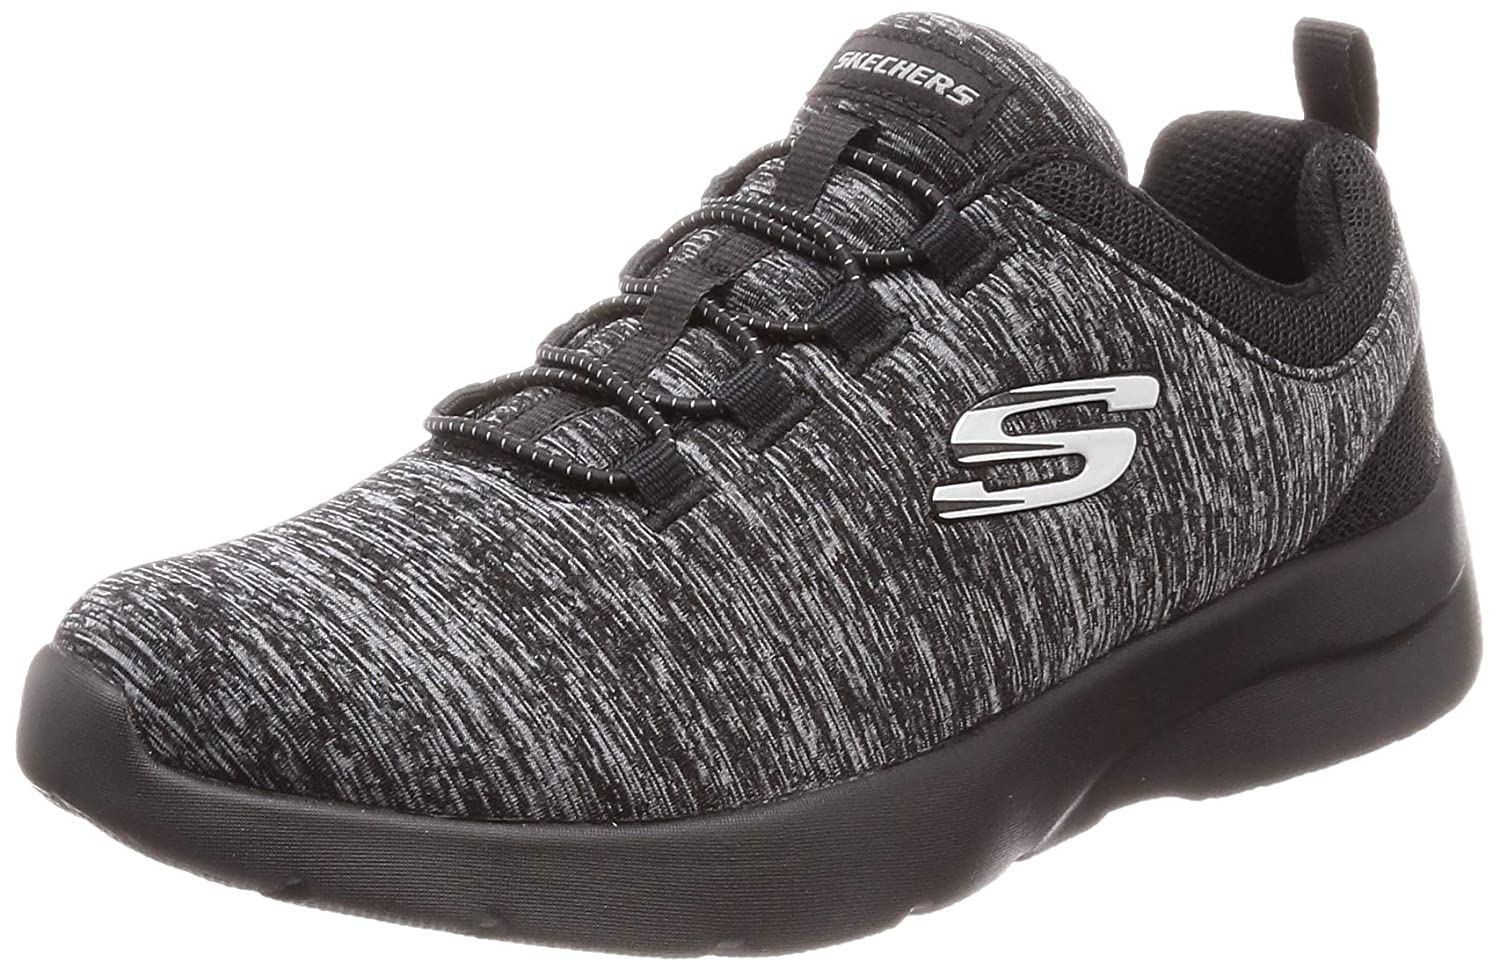 TALLA 38 EU. Skechers Dynamight 2.0- In a Flash- Zapatilla Casual para Mujer